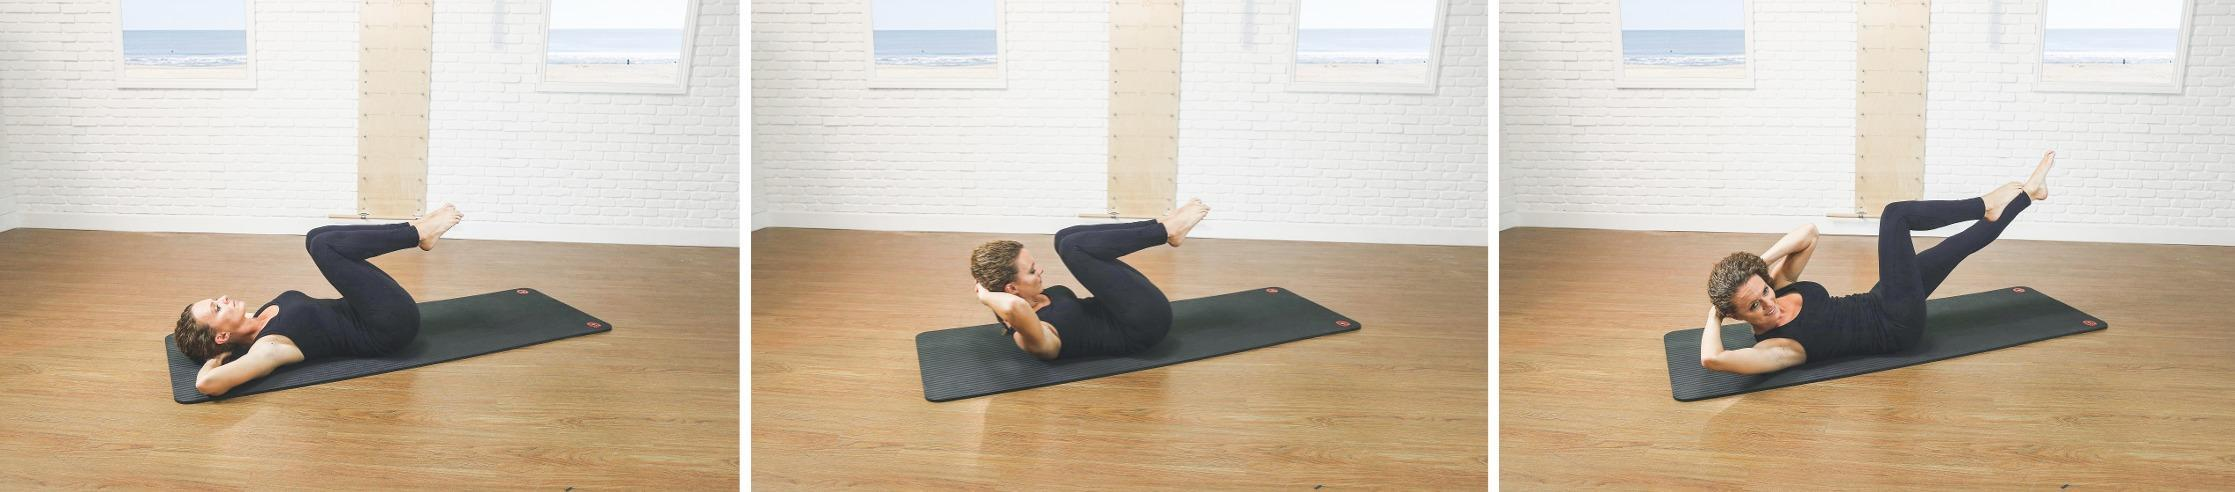 5 Pilates Moves to Target the Obliques